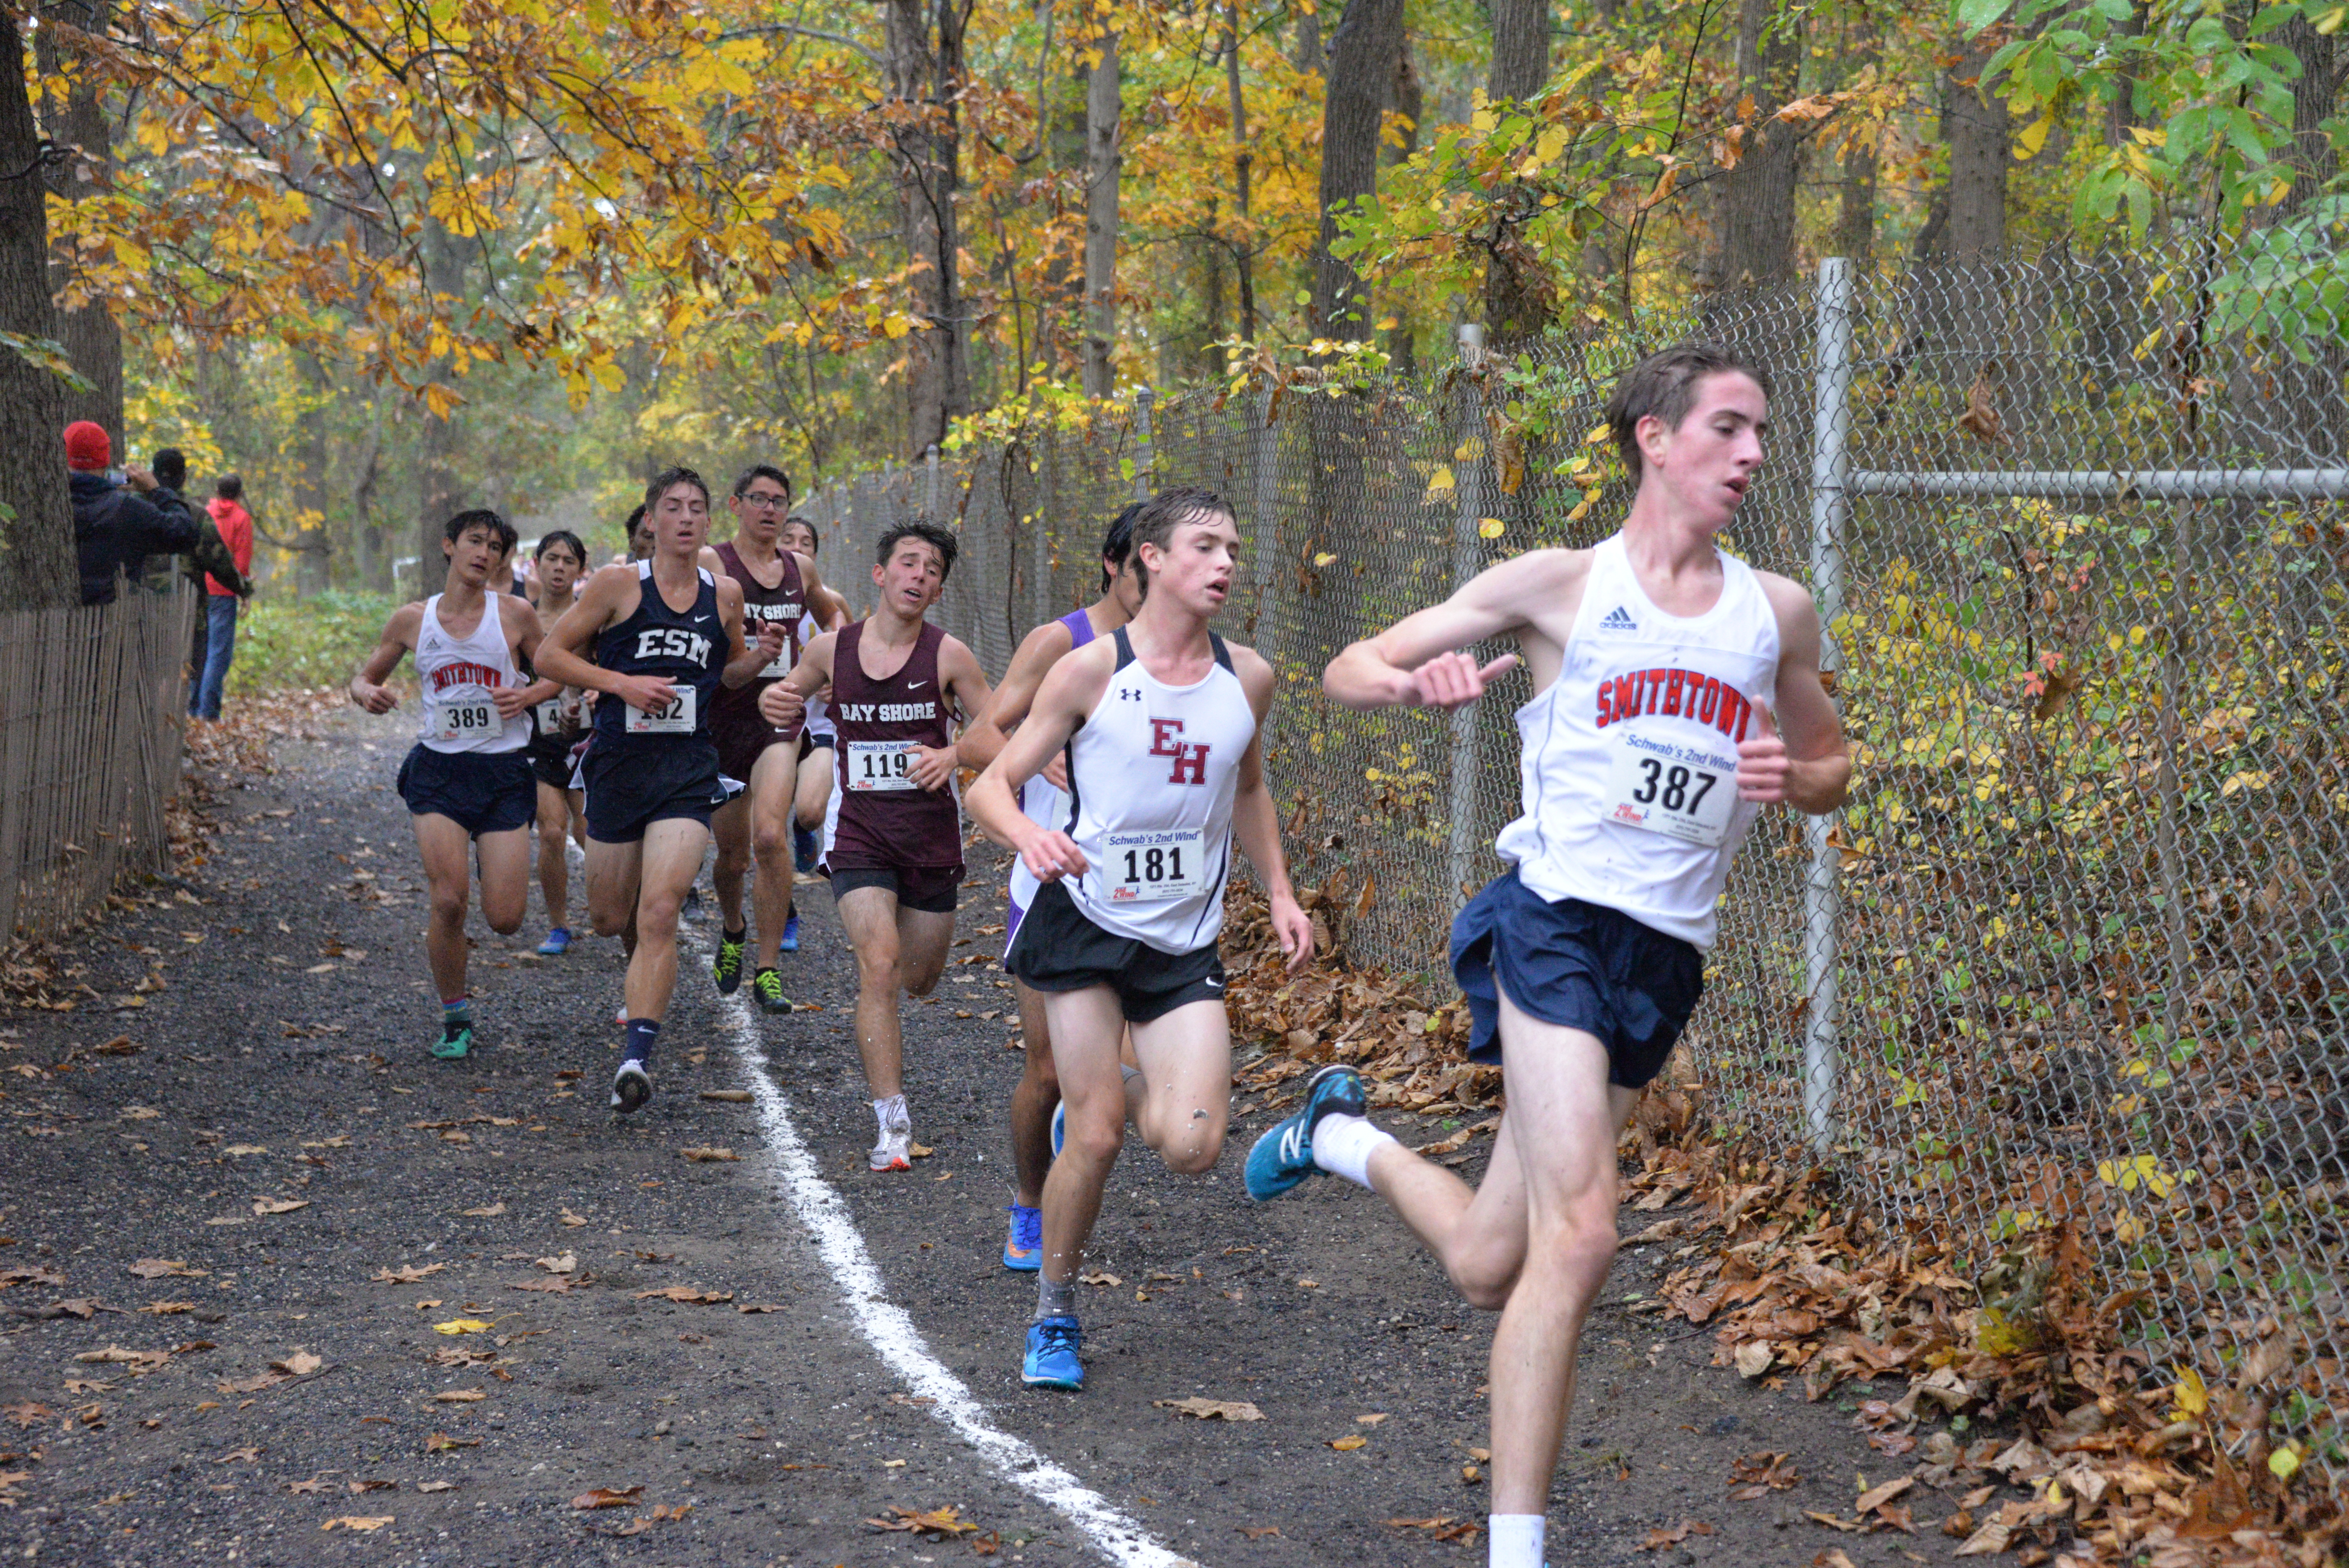 East Hampton sophomore Evan Masi finished third in Division III on October 29.